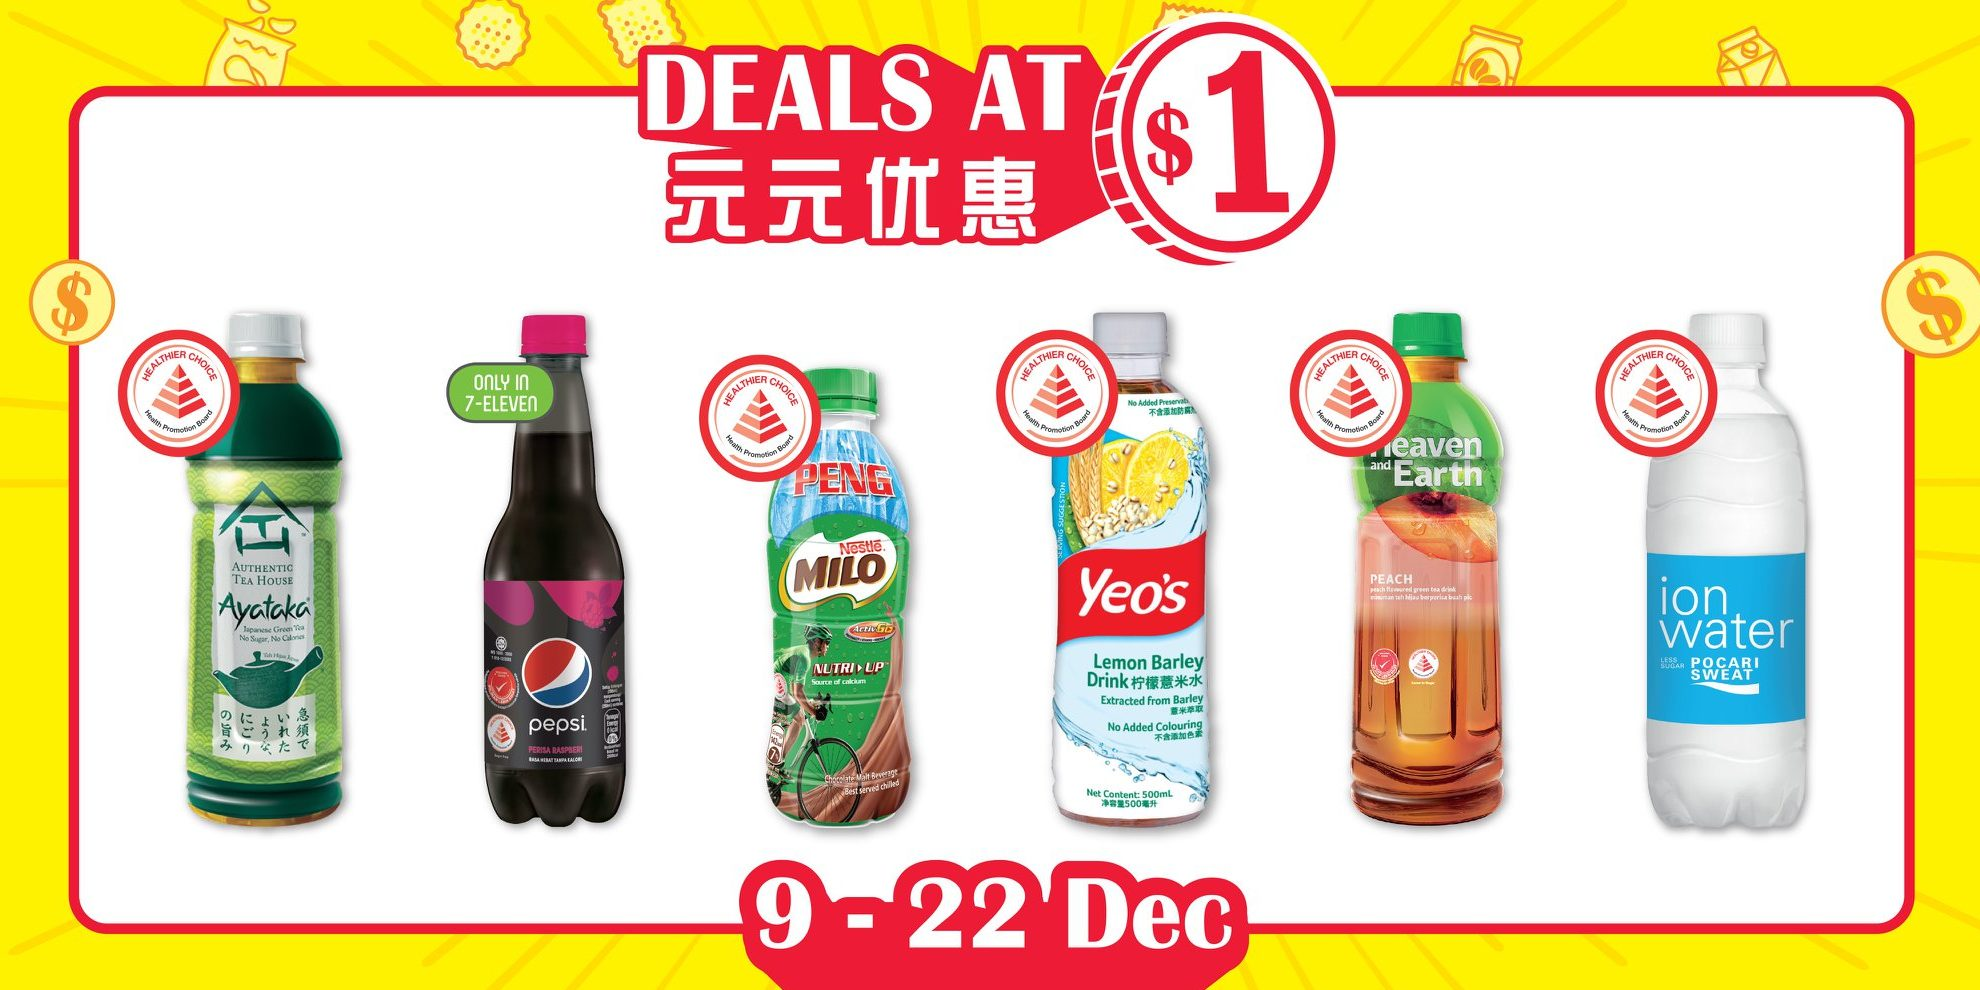 7-Eleven Singapore Deals at $1 Promotion 9-22 Dec 2020